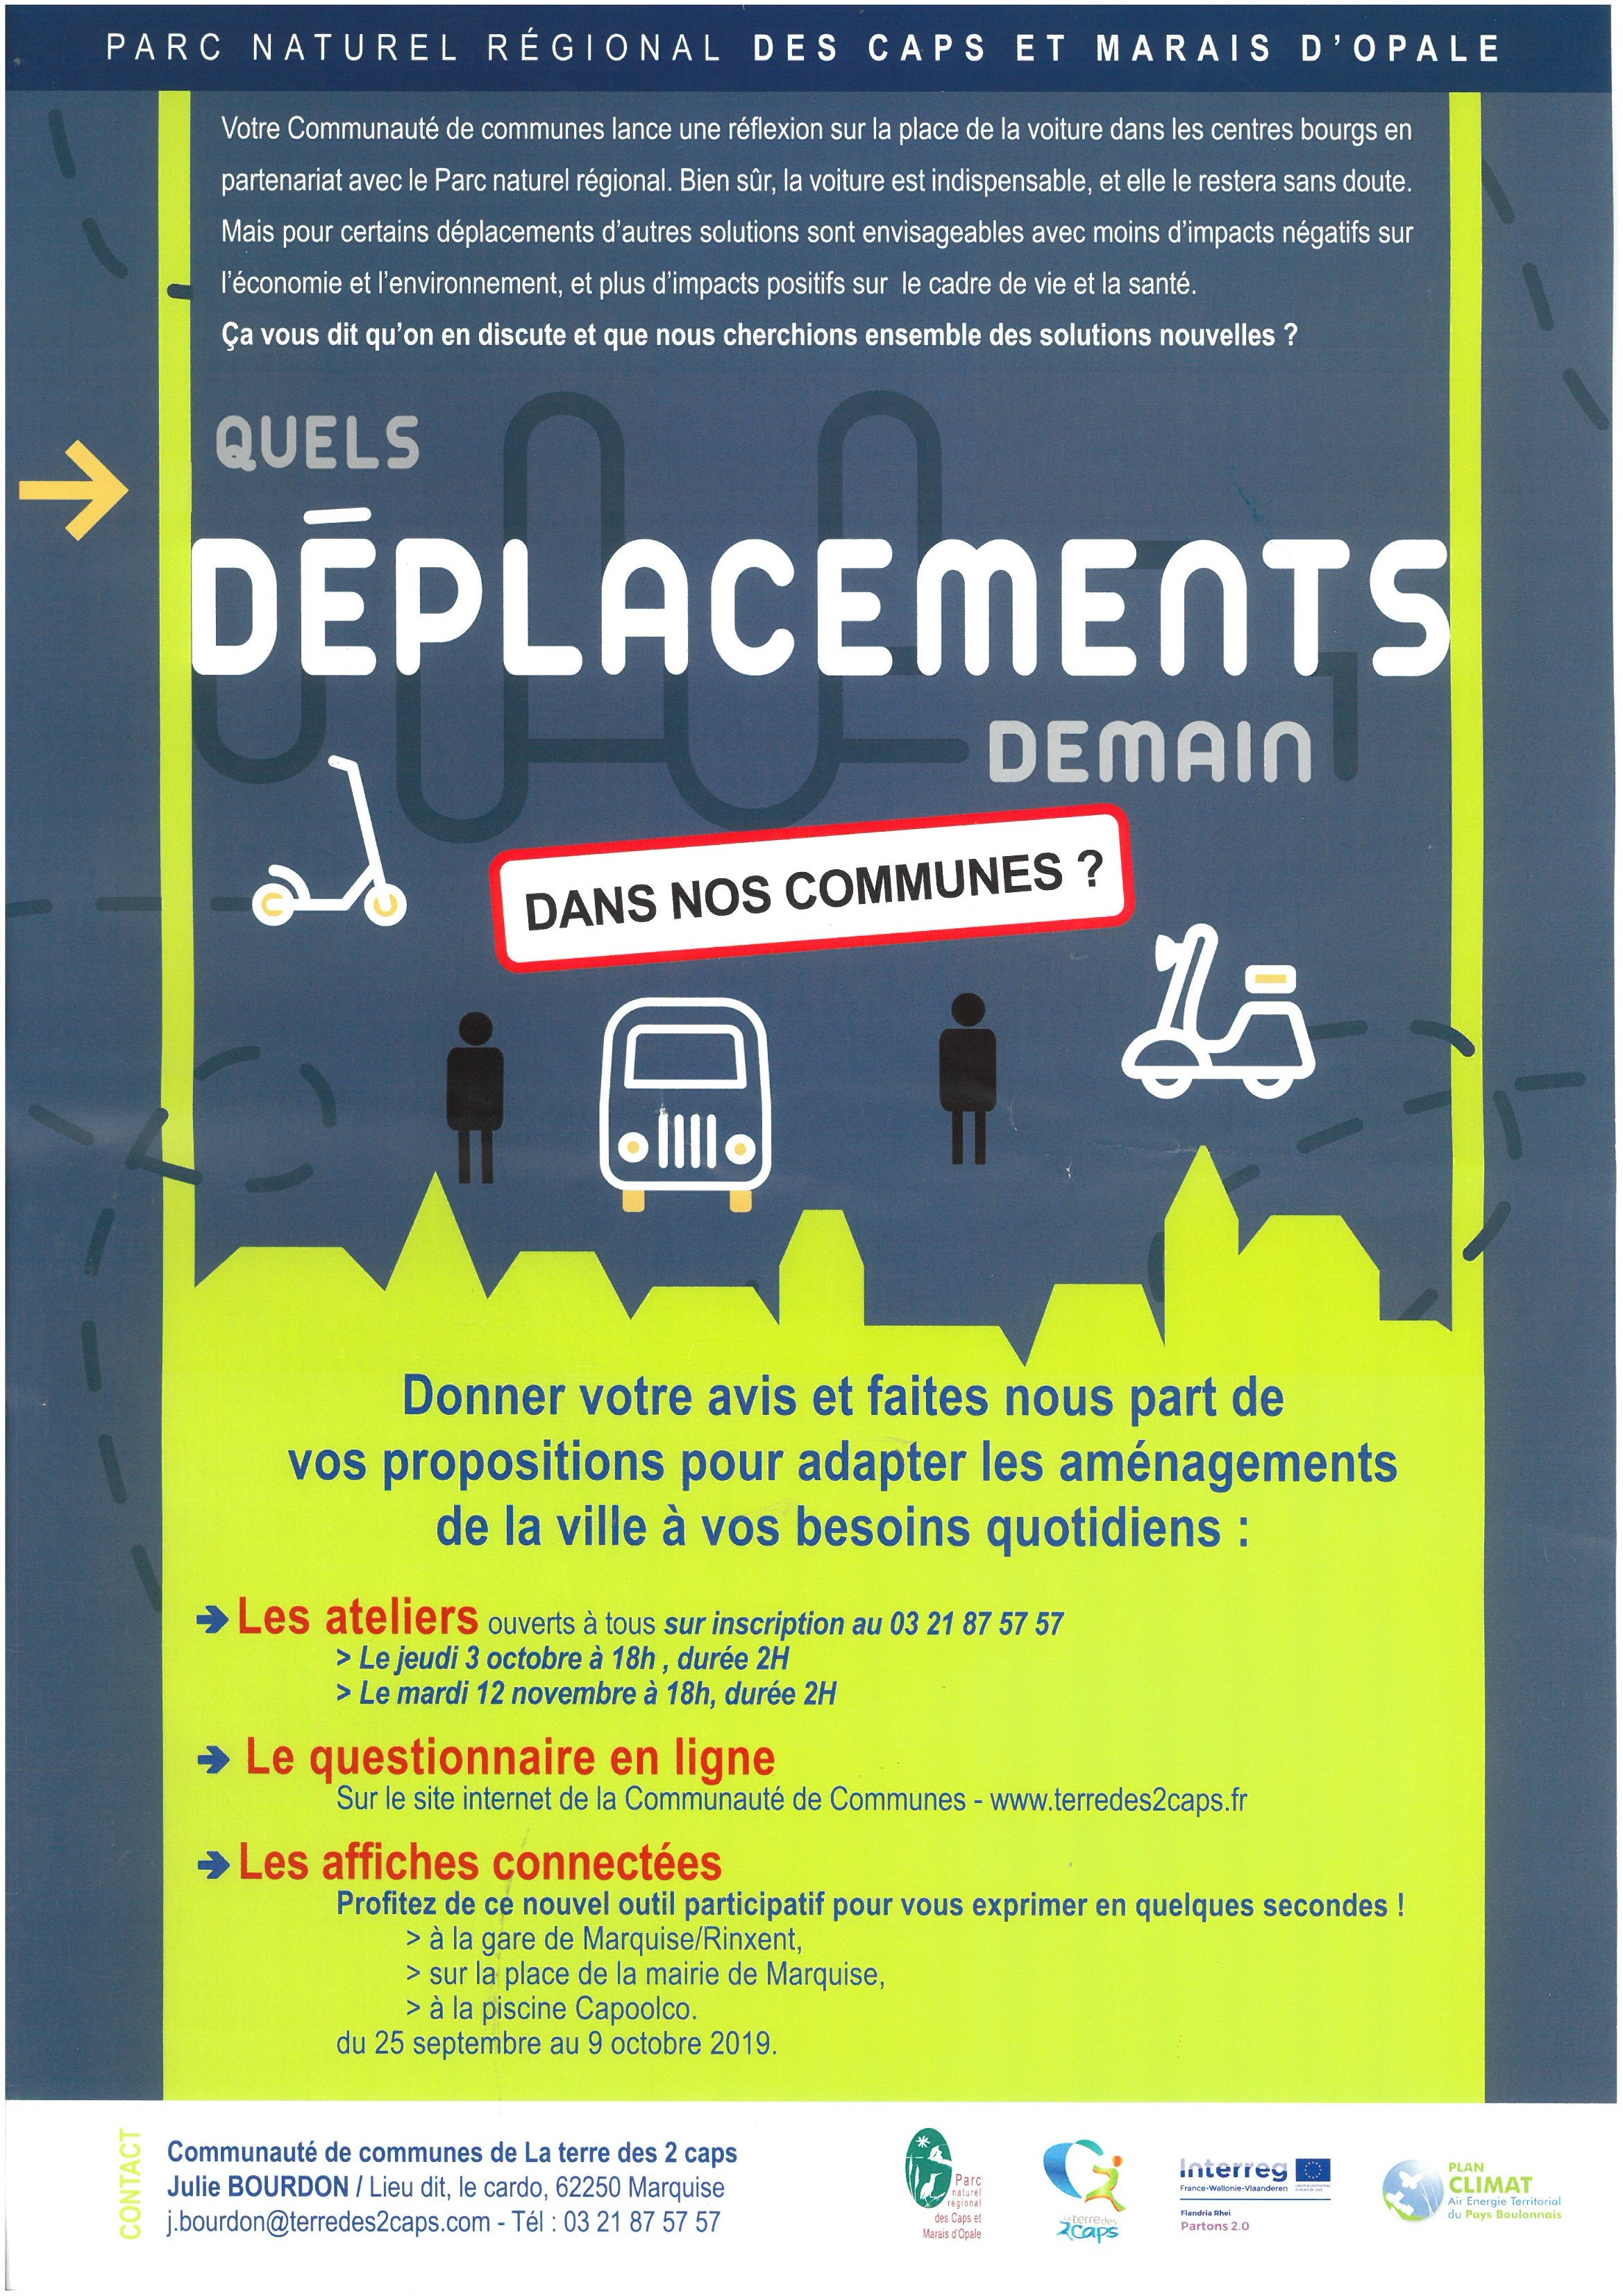 deplacements-demain